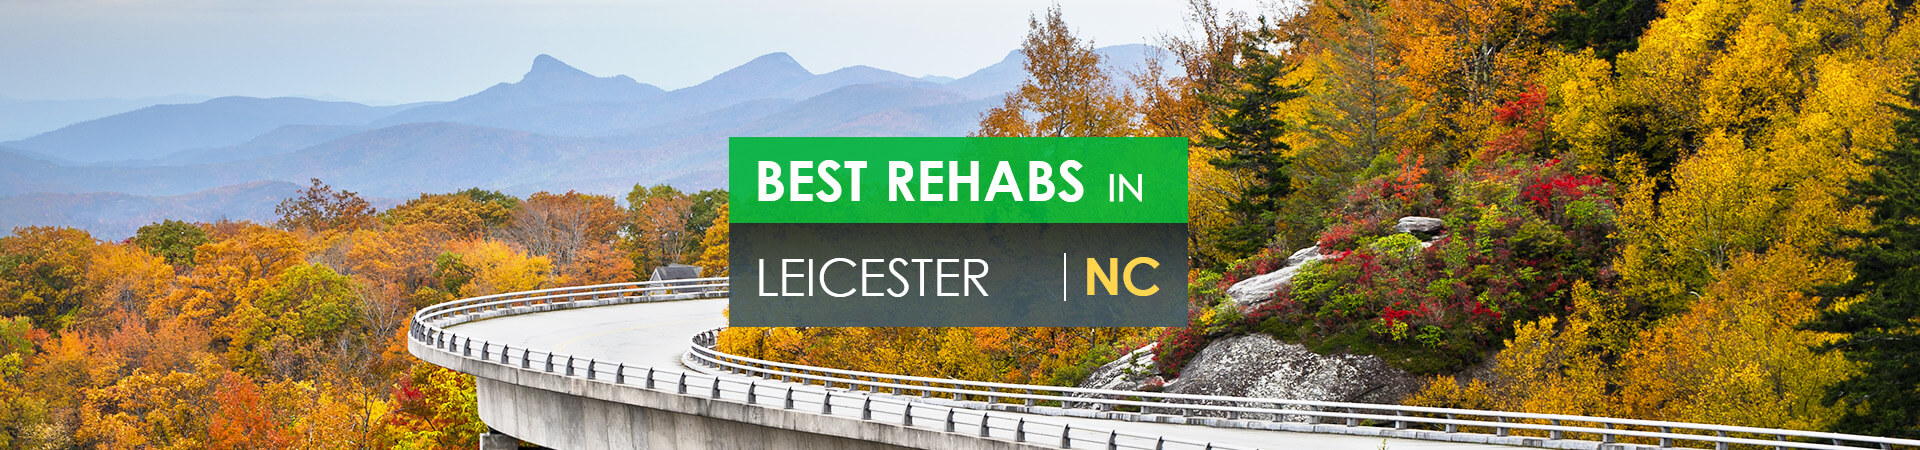 Best rehabs in Leicester, NC